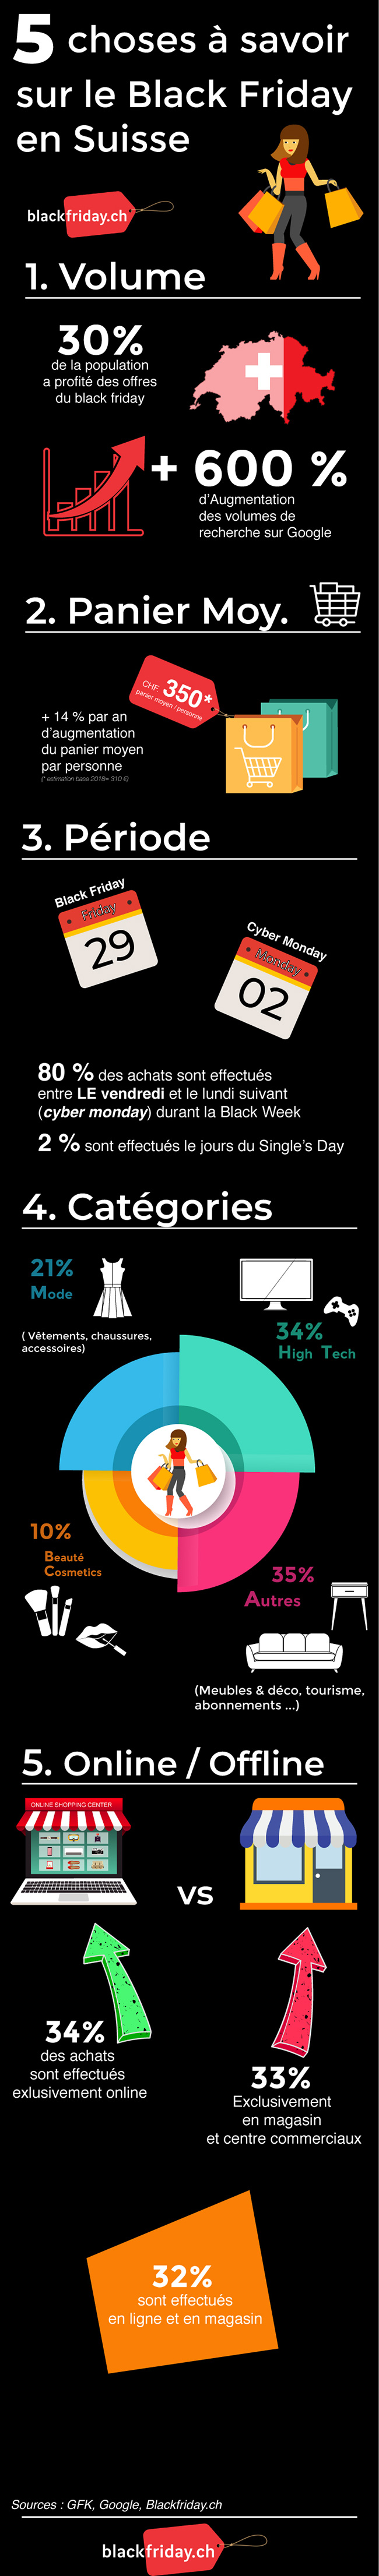 Black Friday Suisse infographie